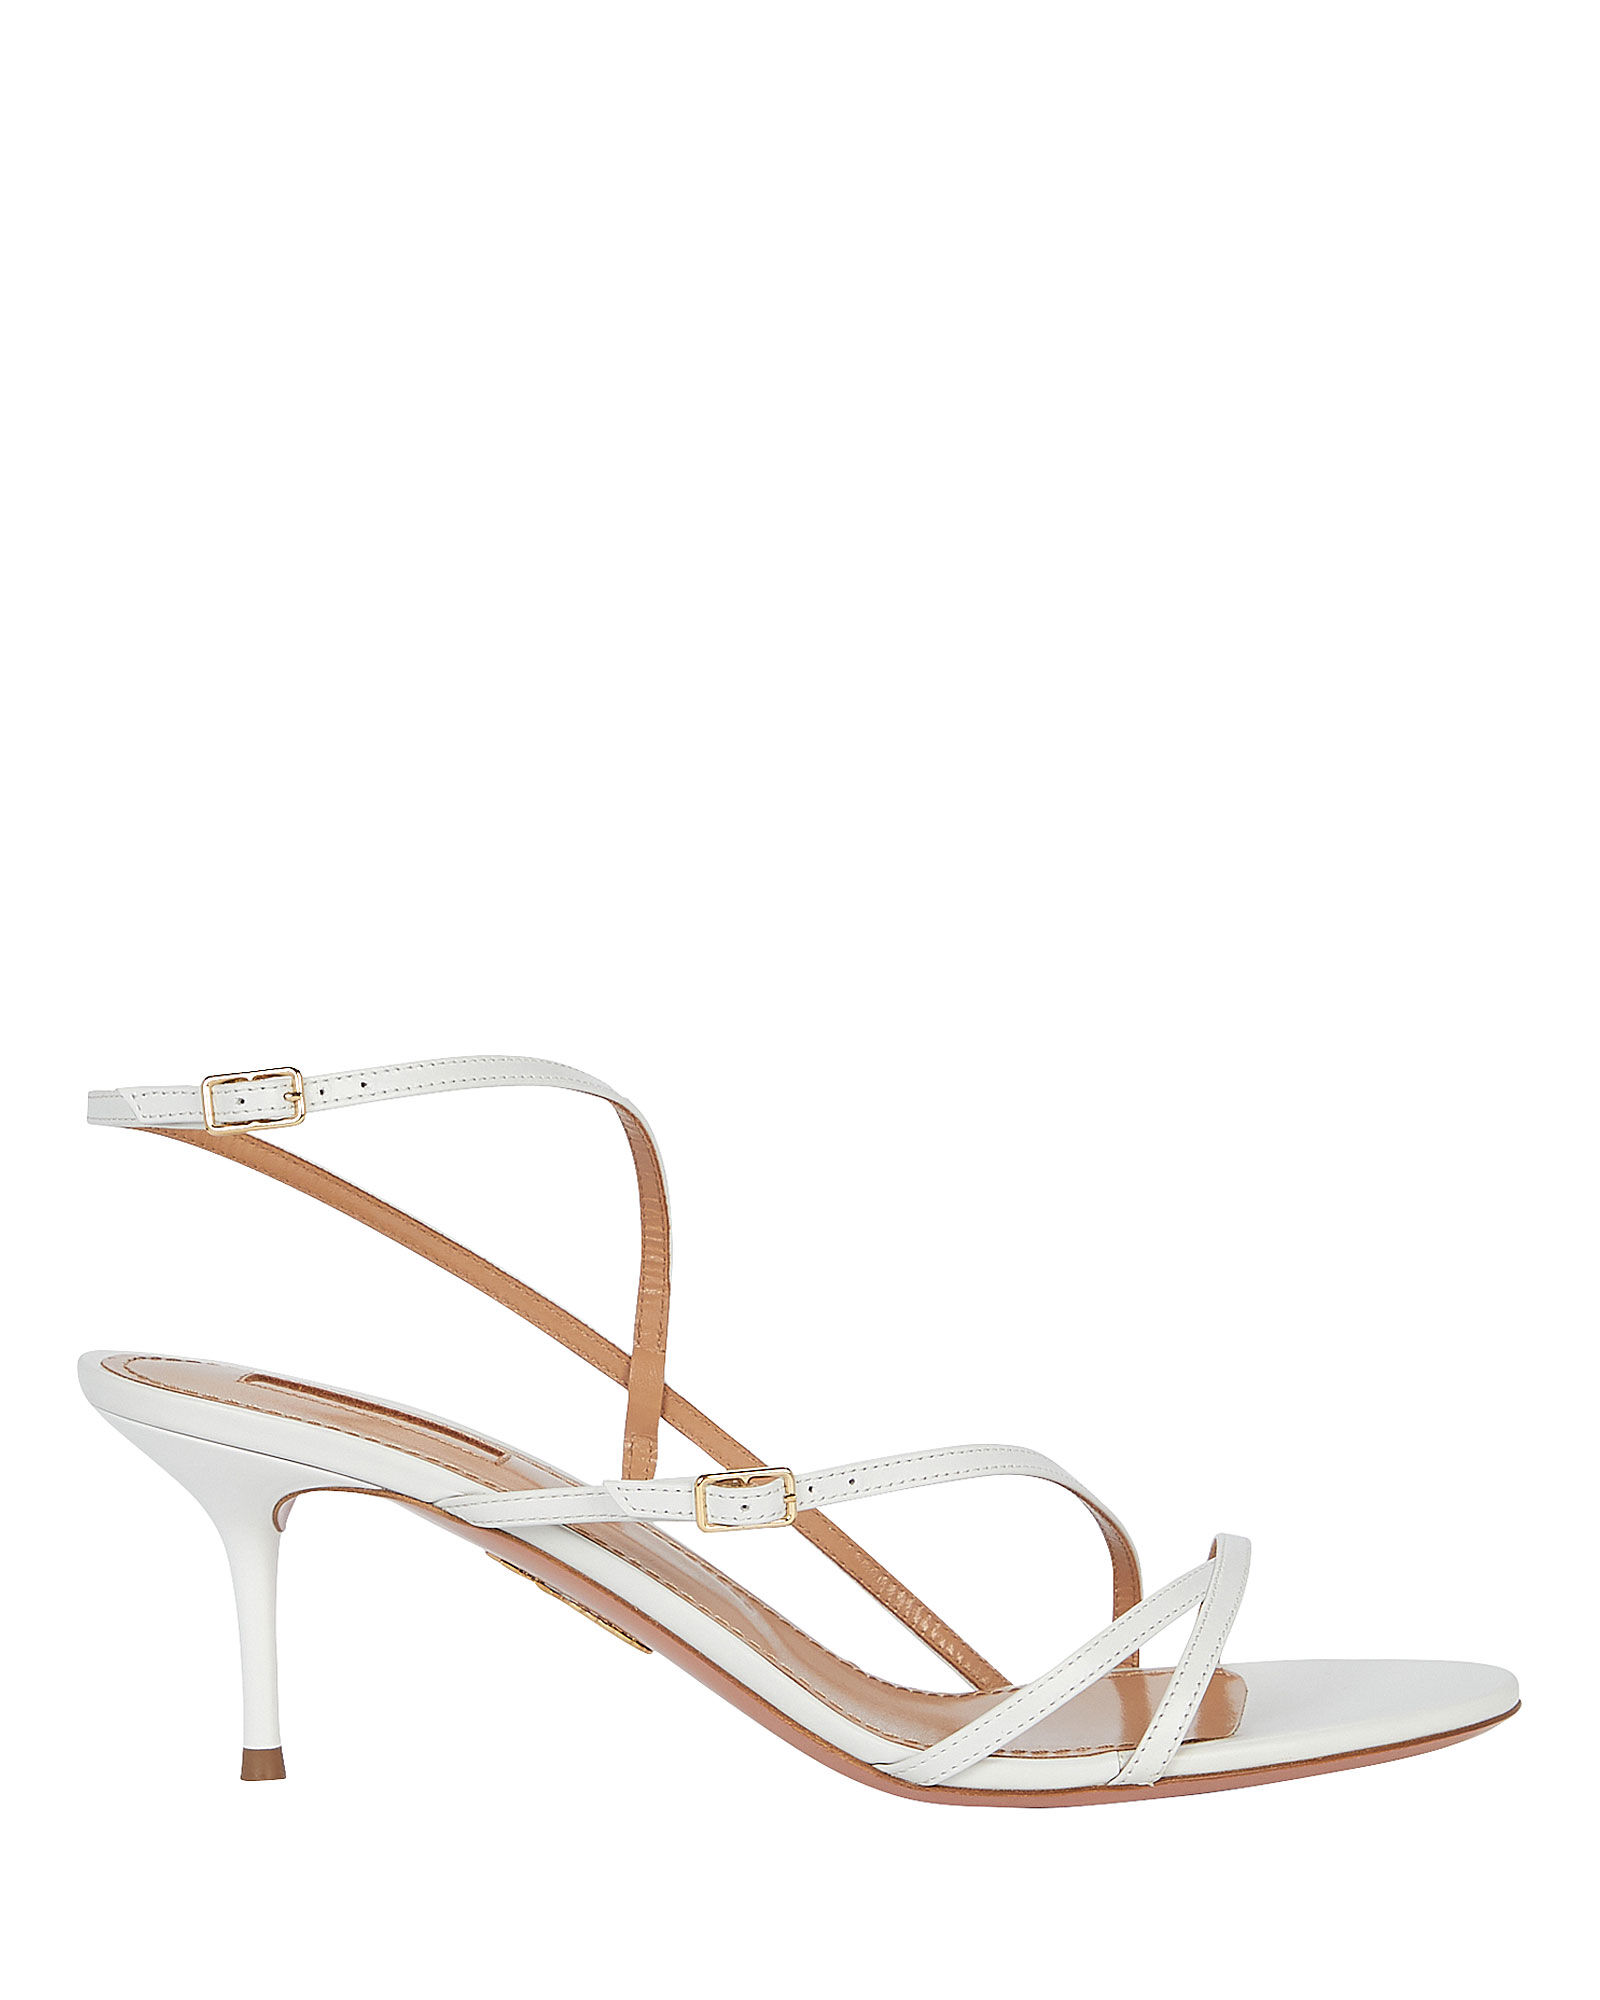 Carolyne 60 Leather Sandals, WHITE, hi-res